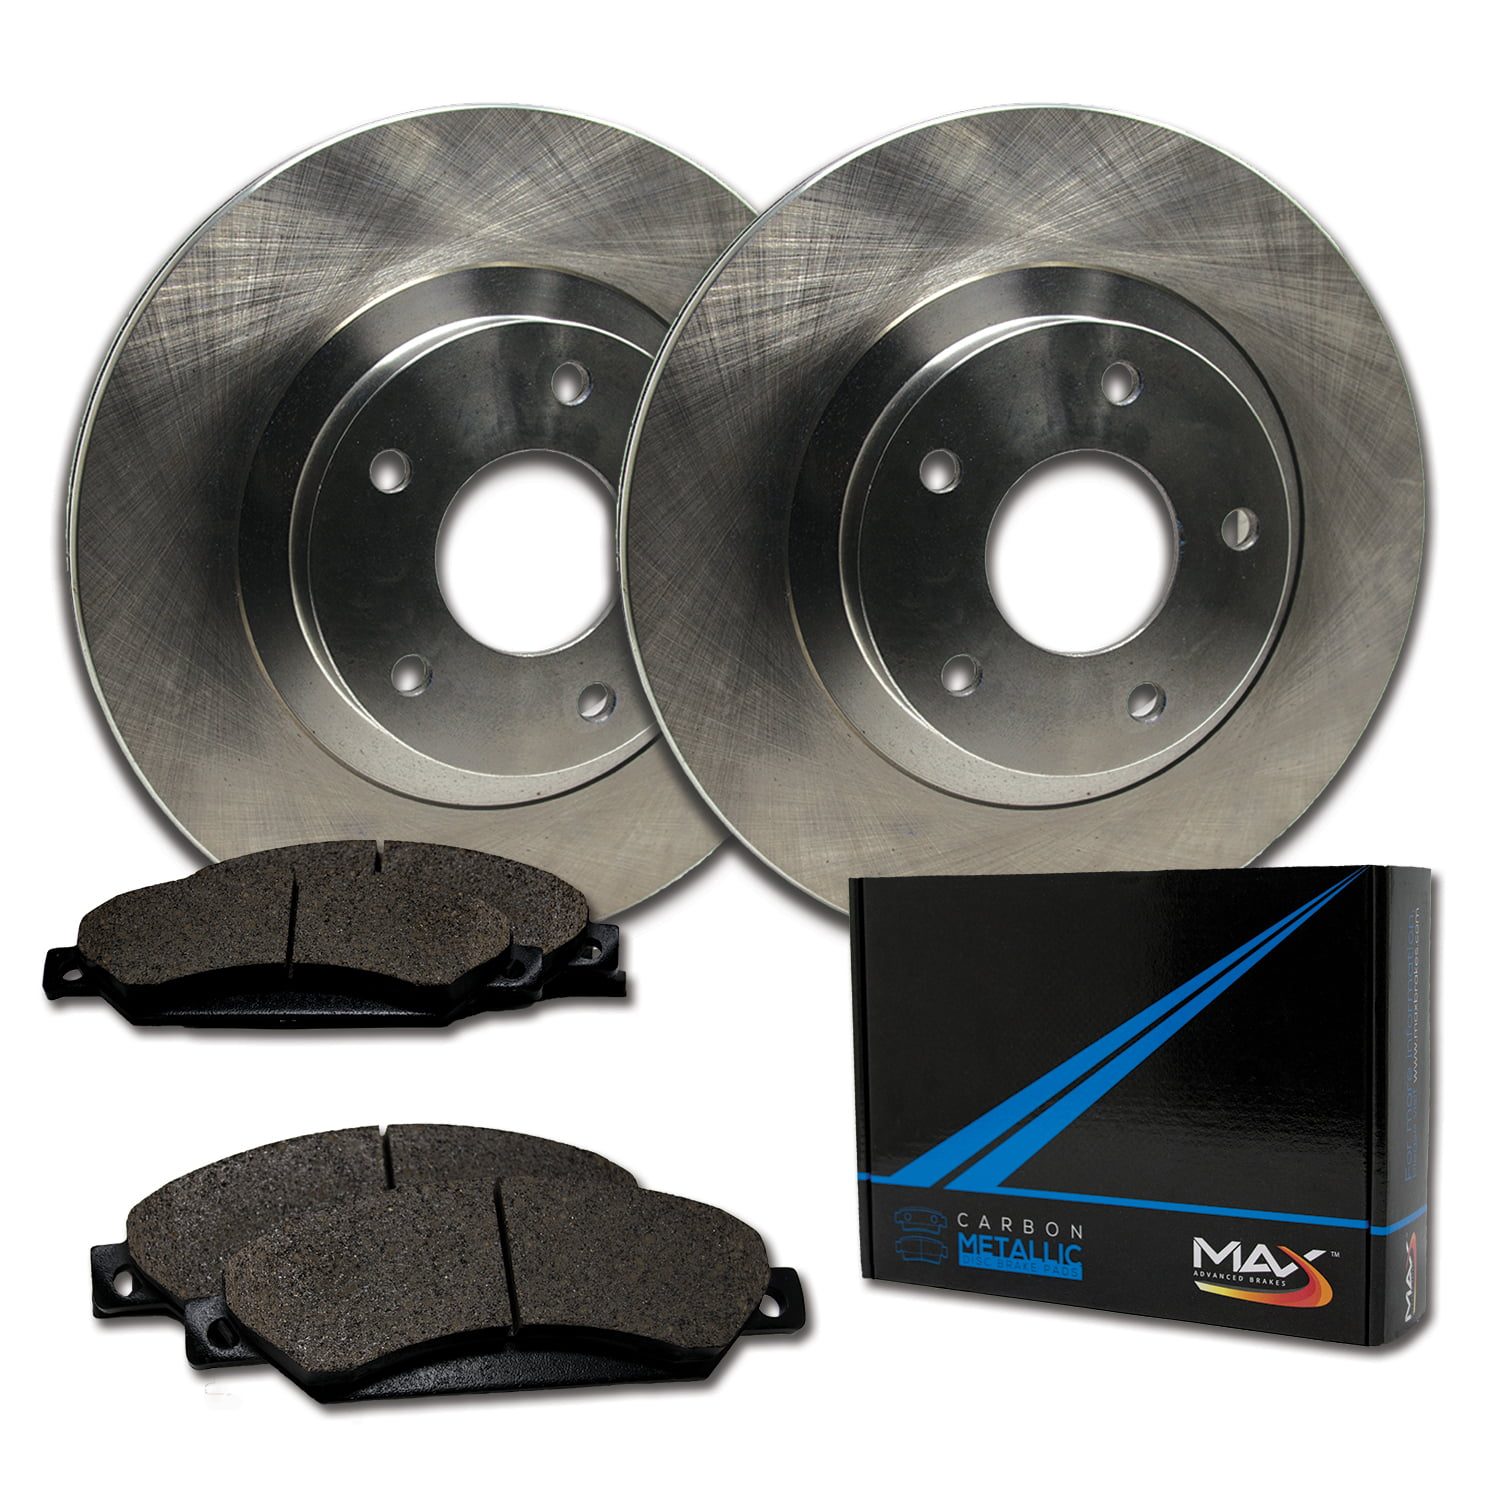 Max Brakes Rear Premium Brake Kit Fits 2014 2015 Ford Escape C Max KT172742 OE Series Rotors + Ceramic Pads